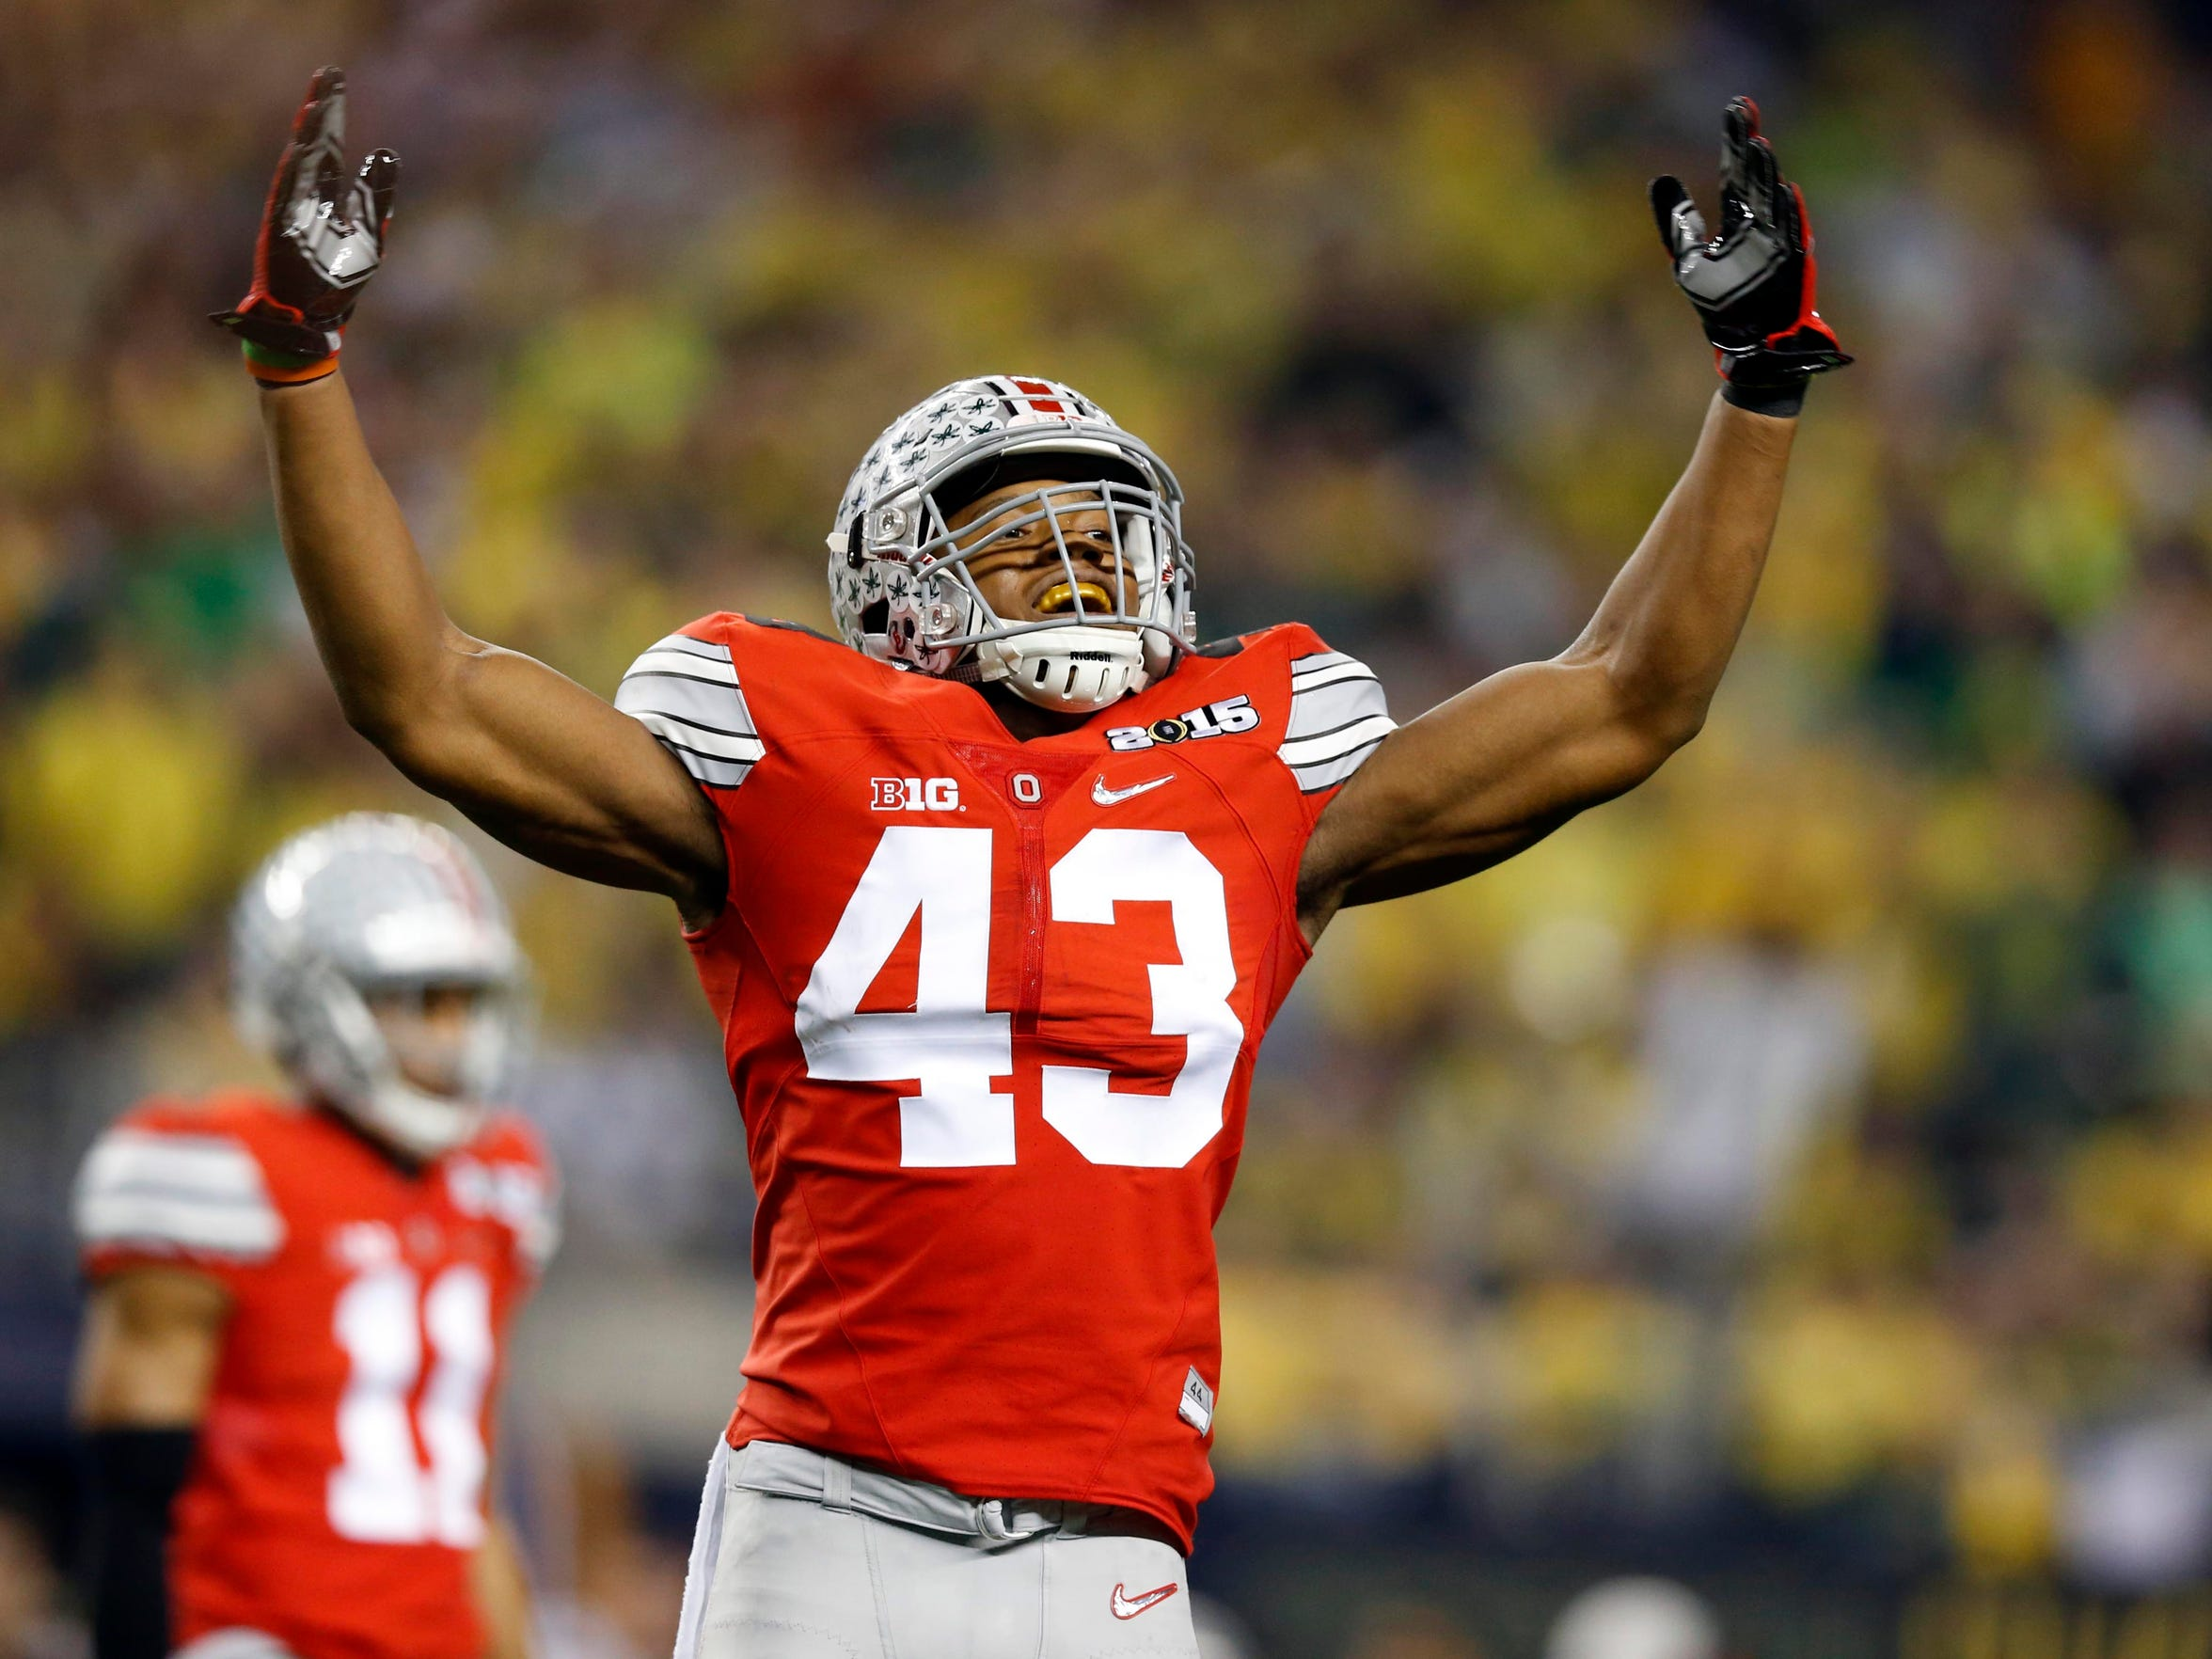 Ohio State linebacker Darron Lee